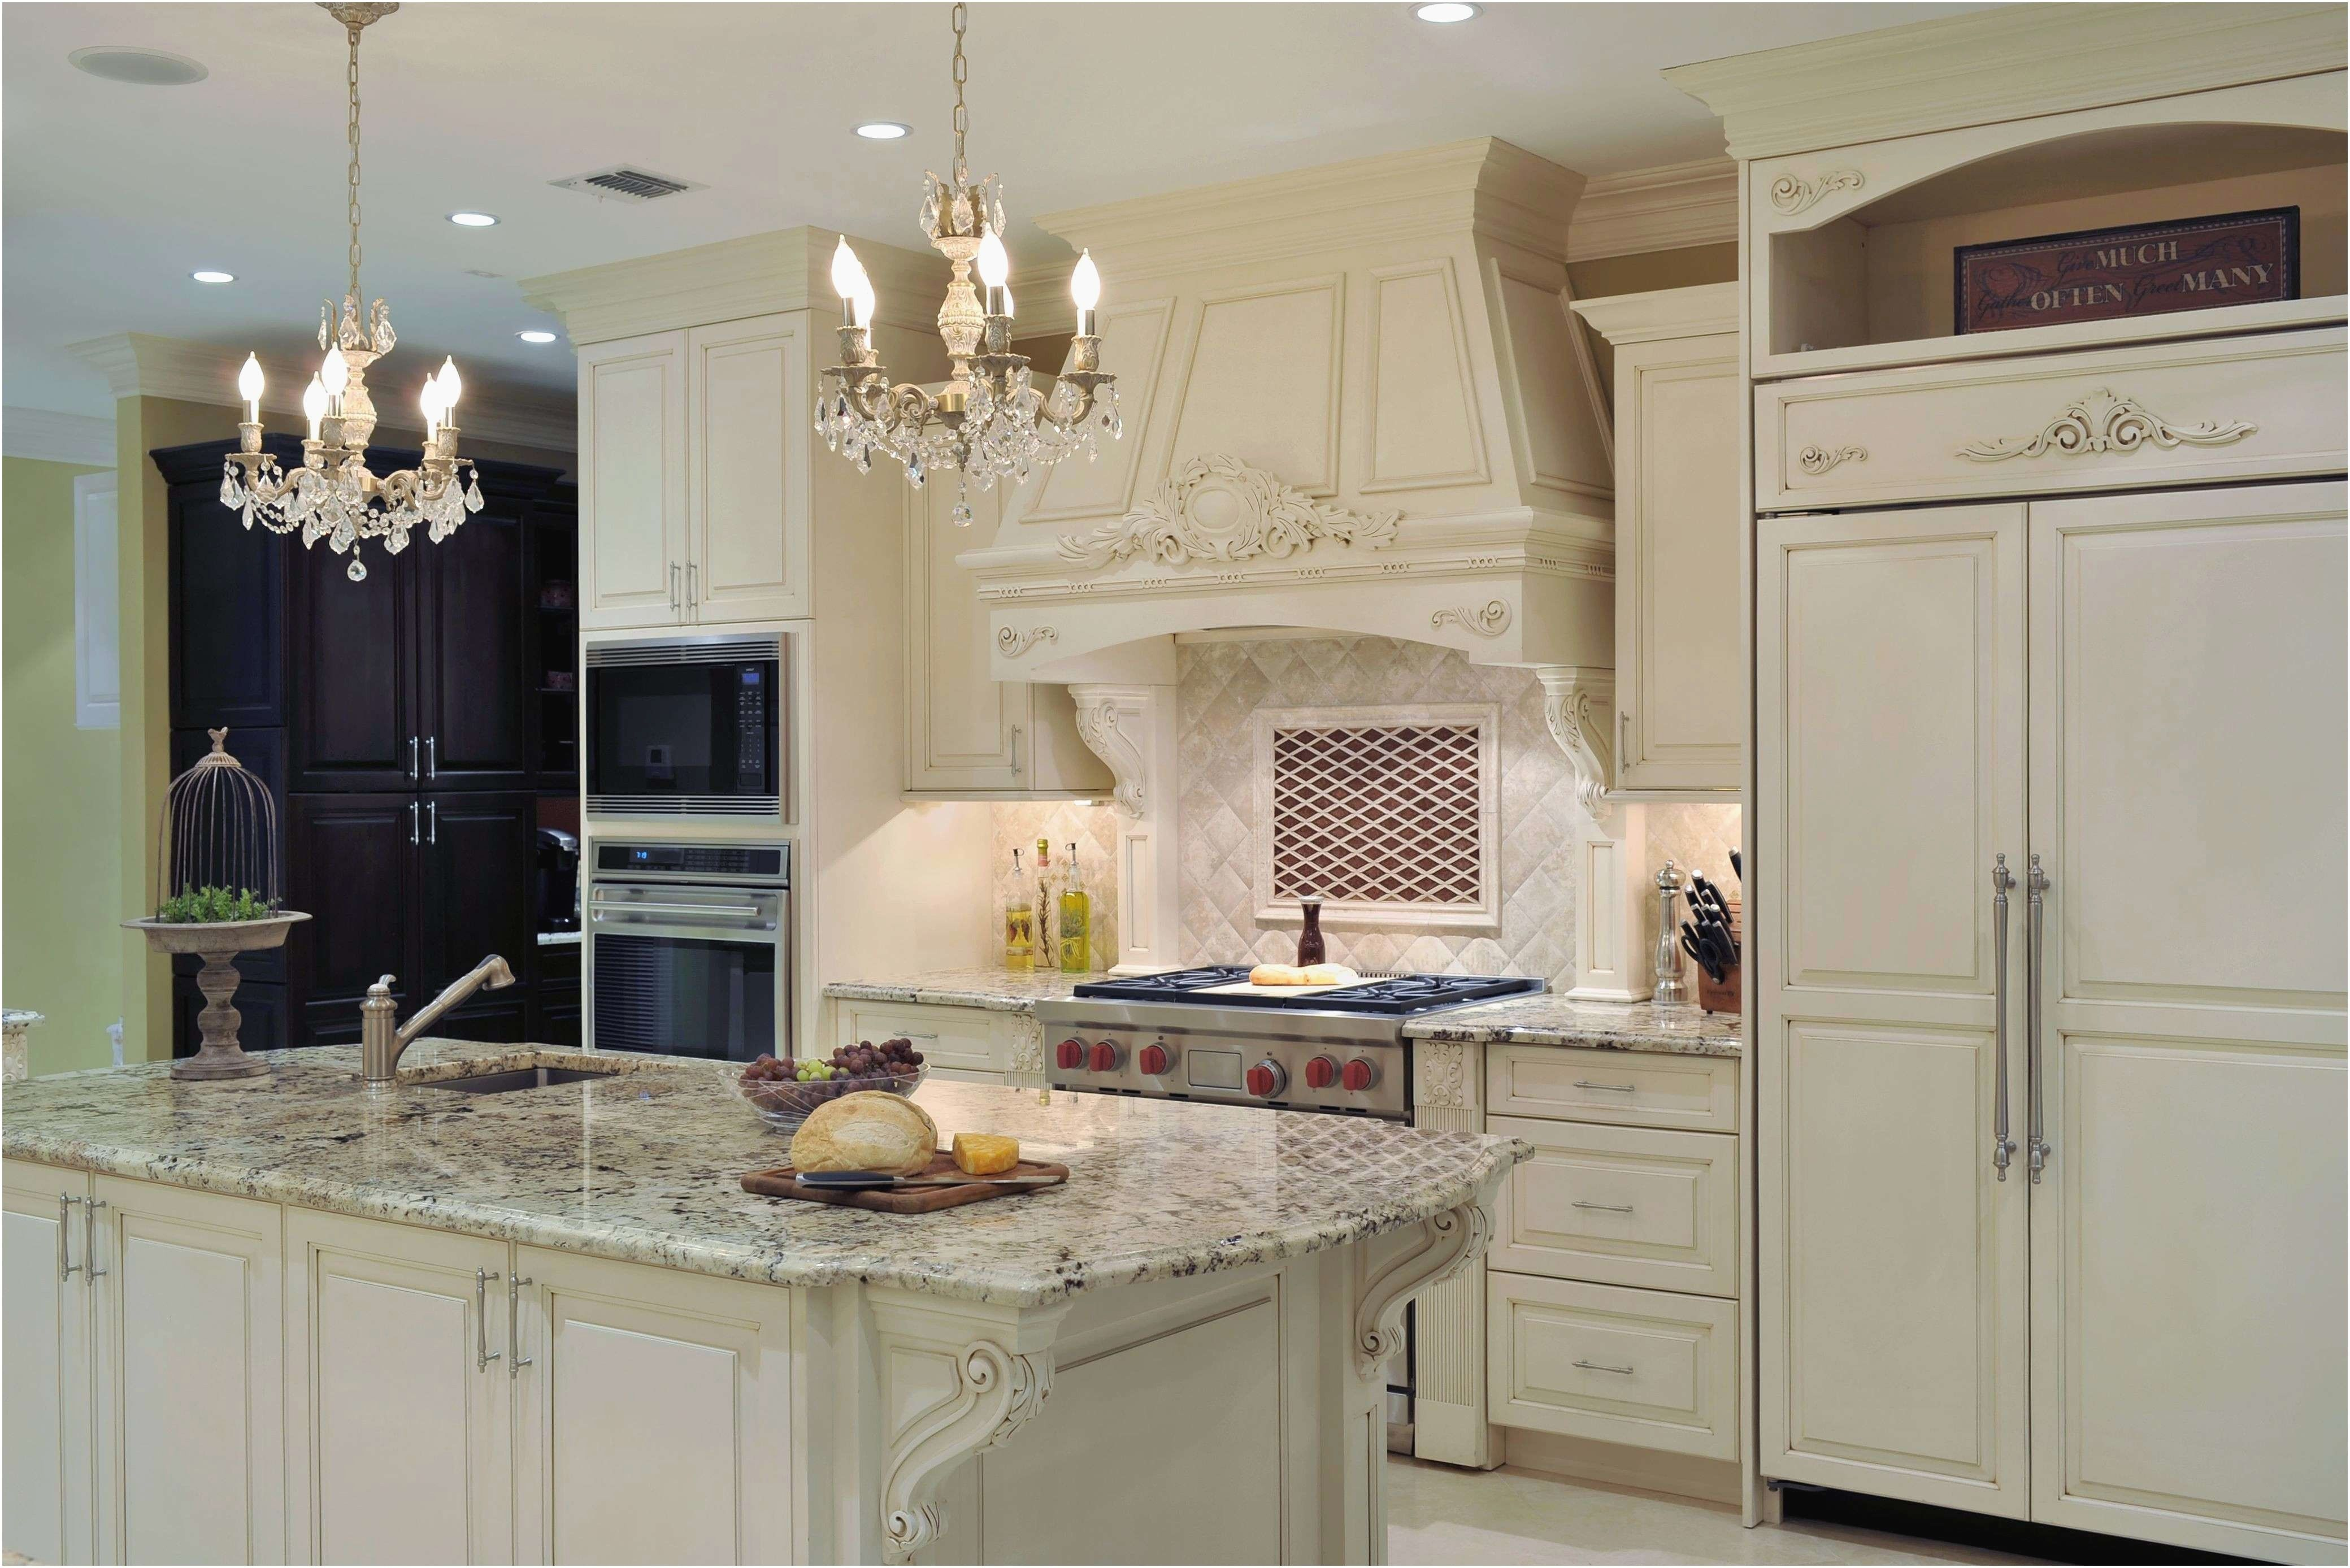 Unique Panda Kitchen Cabinets The Most Elegant In Addition To Beautiful Panda Kitchen Cabinets Intended For Really Encourage Your Property Provide Home Comfy